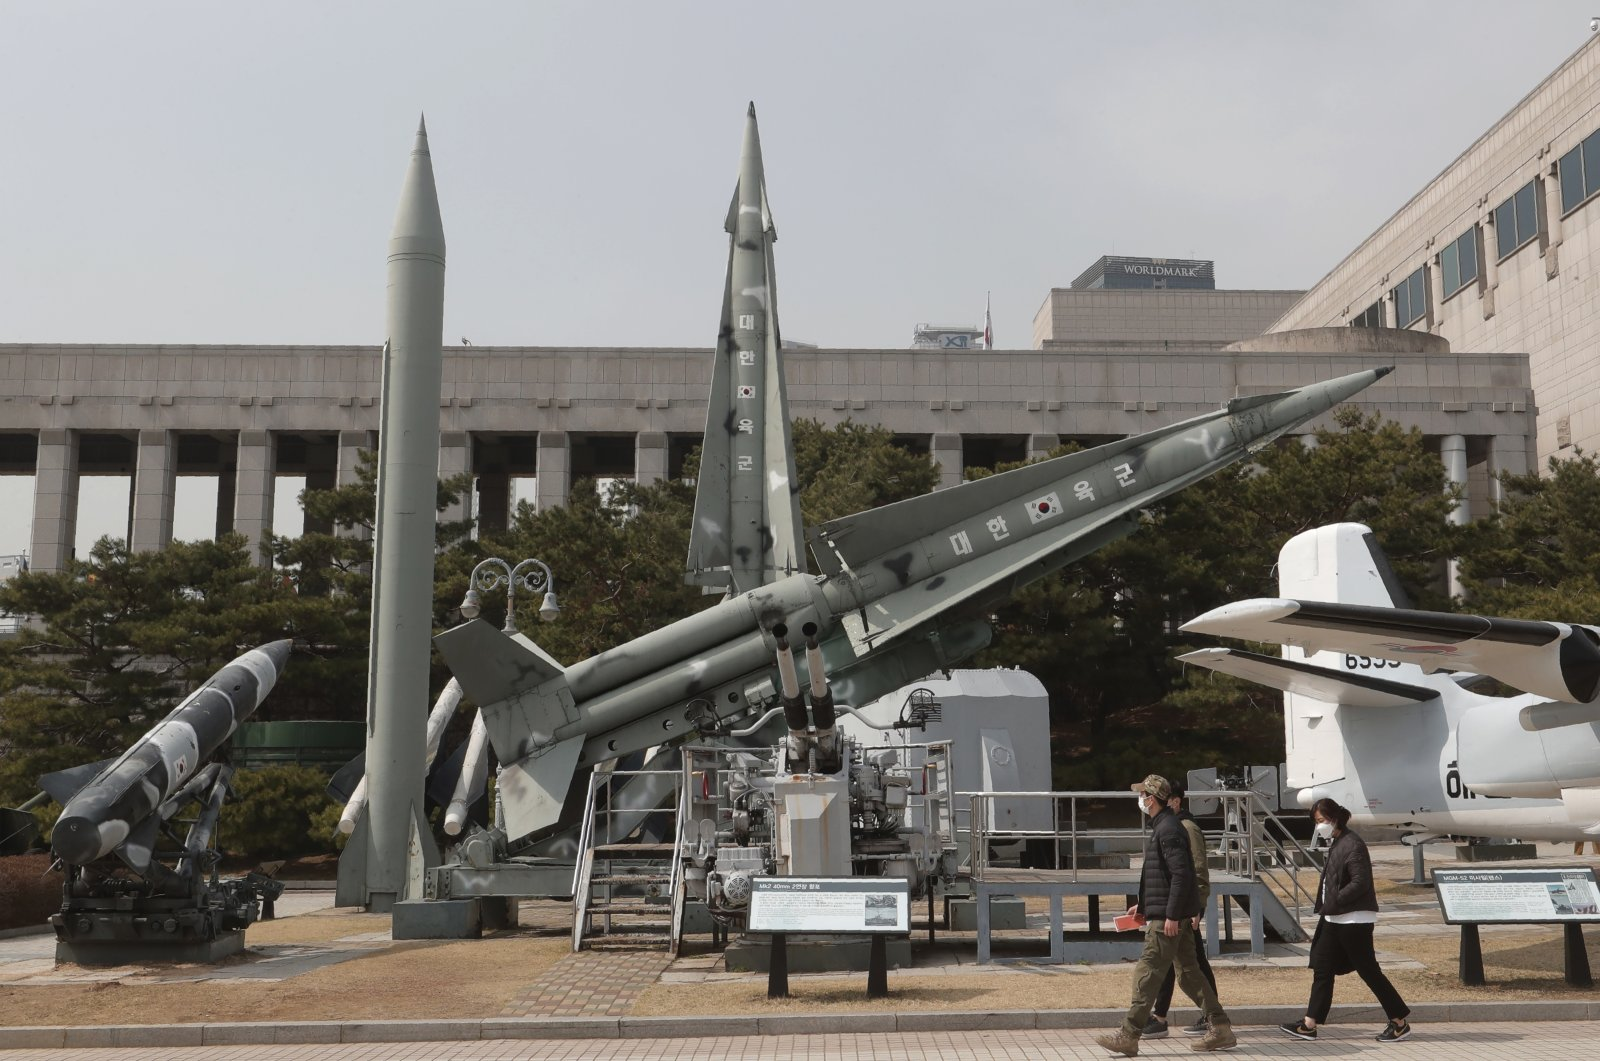 A mock North Korean Scud-B missile (2nd from L) and South Korean missiles are displayed at the Korea War Memorial Museum in Seoul, South Korea, March 18, 2021. (AP Photo)